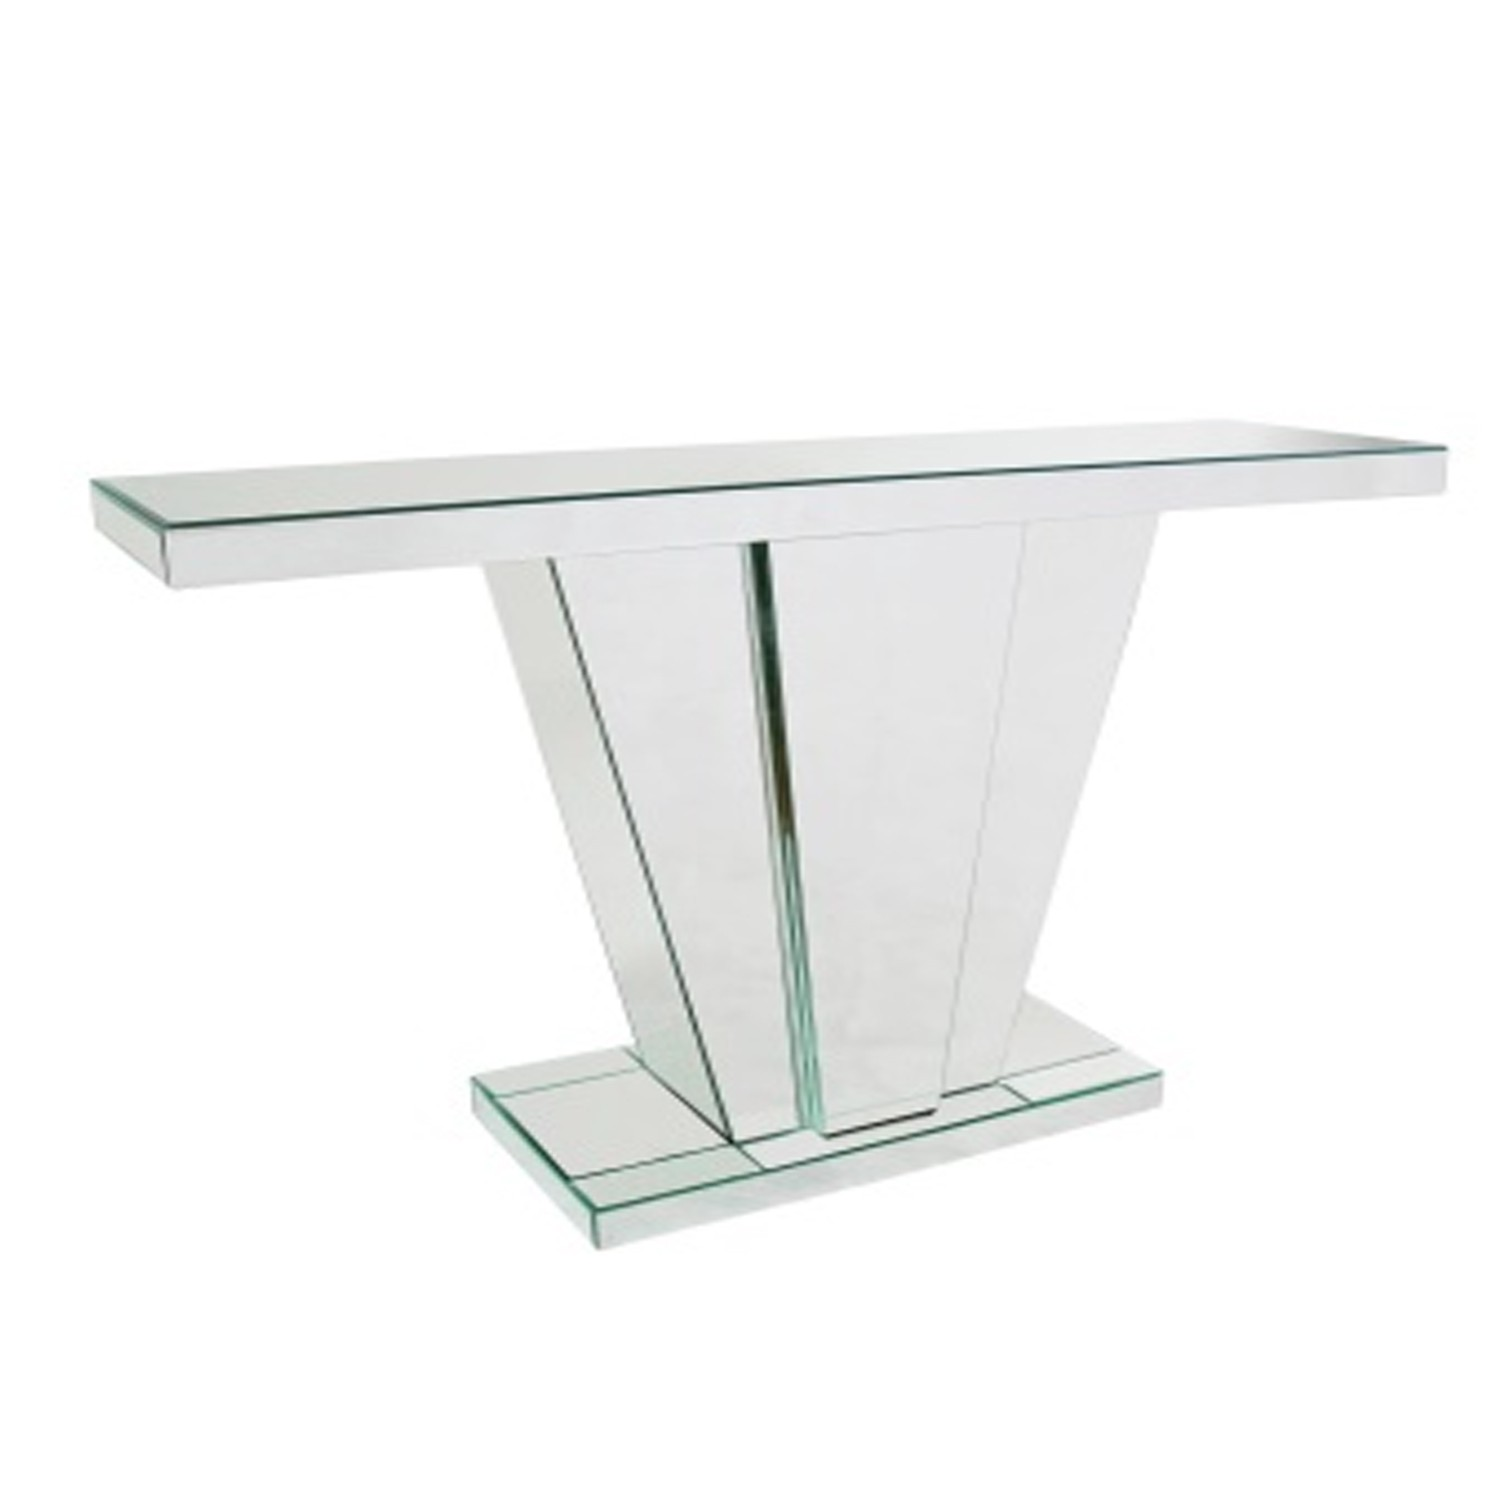 Fullsize Of Mirrored Console Table